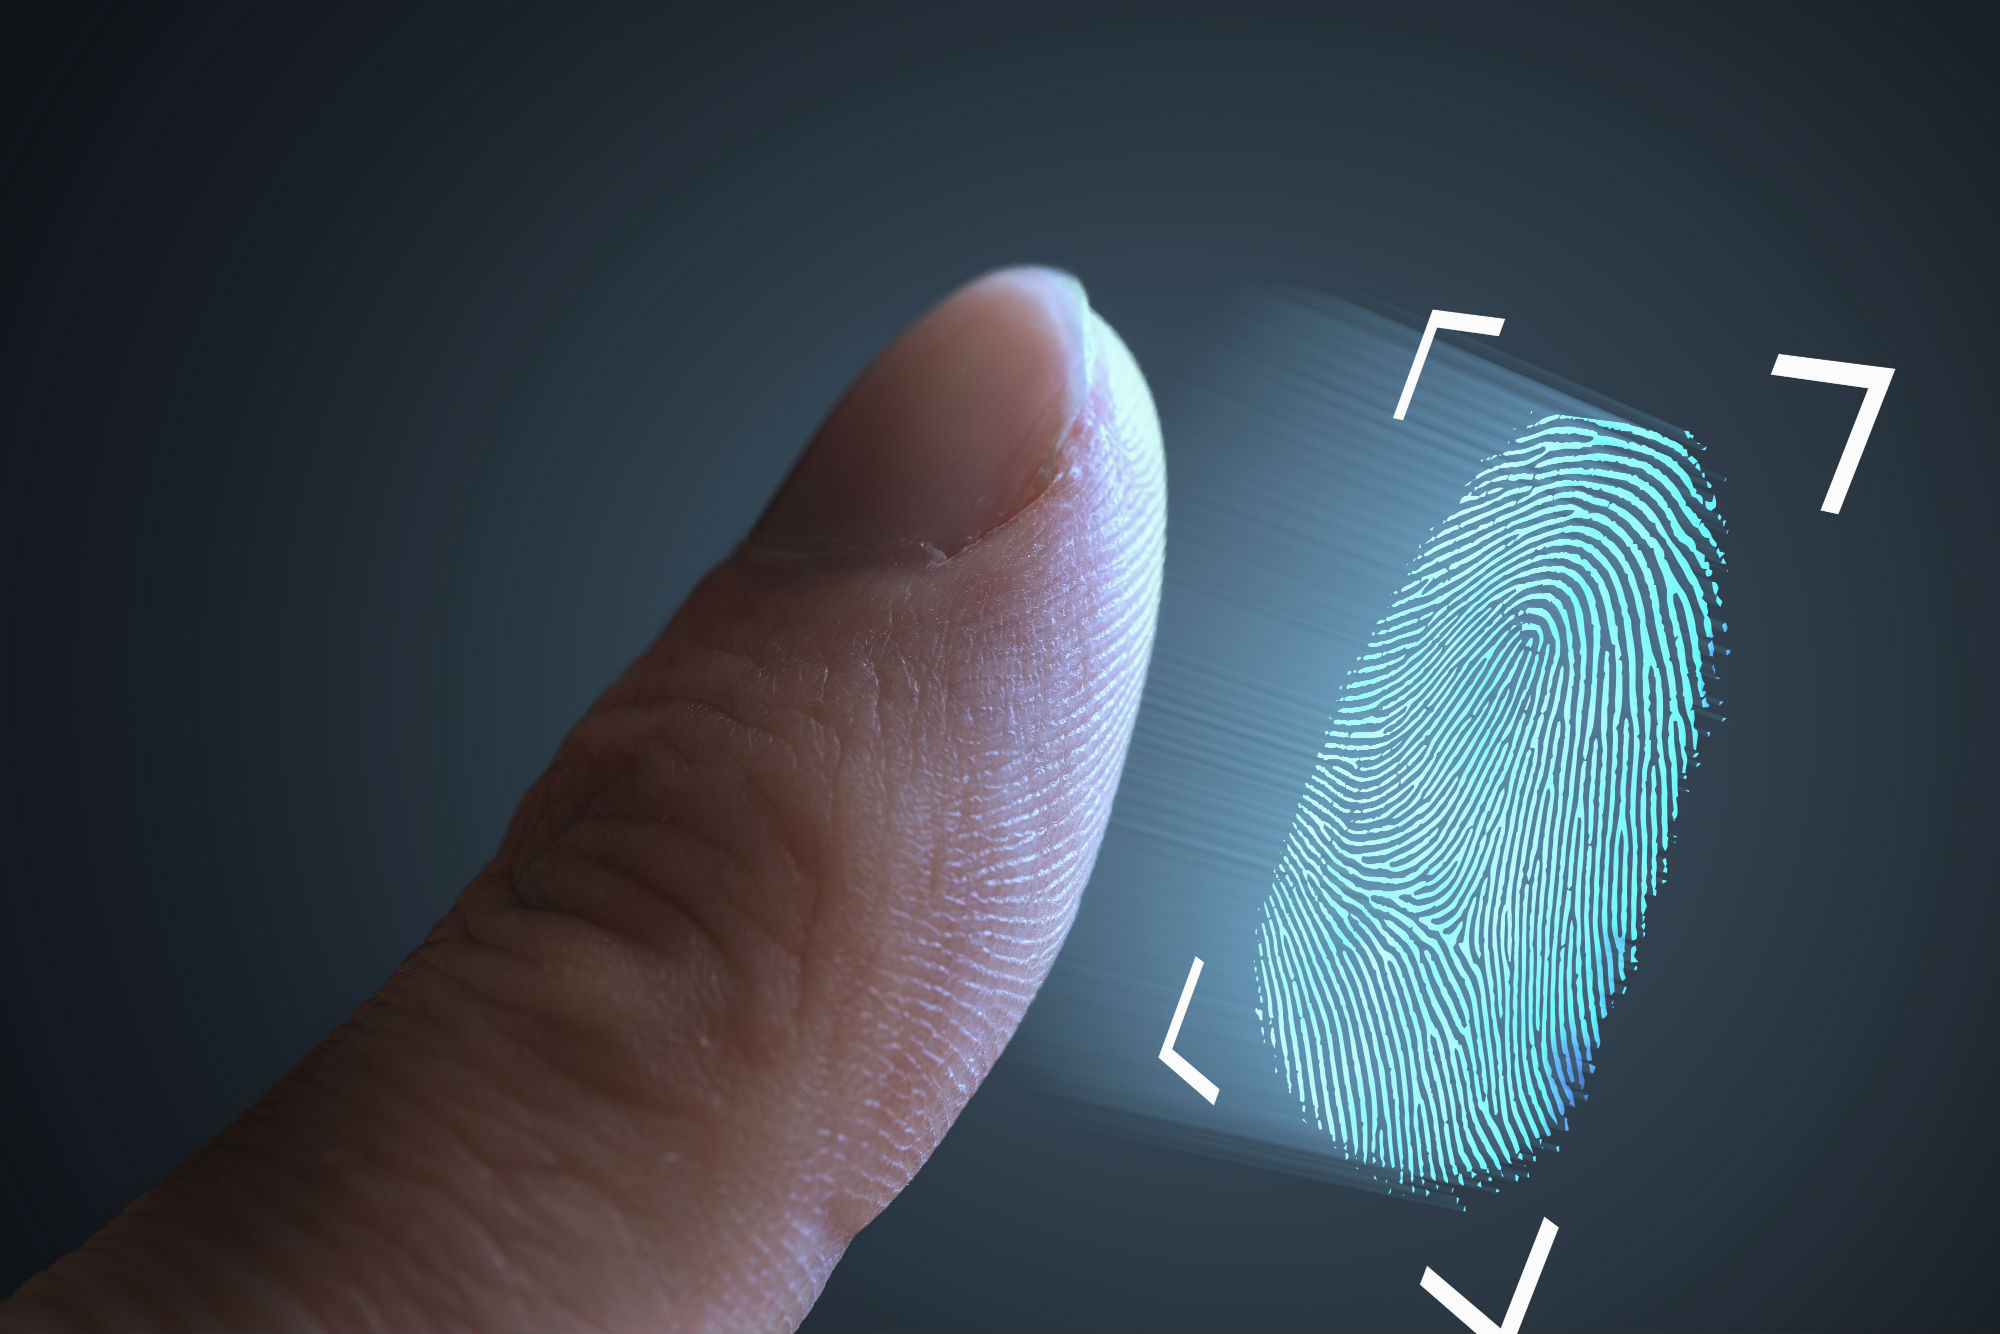 Biometric indicators such as facial recognition and fingerprints are set to replace the password. Image: Shutterstock